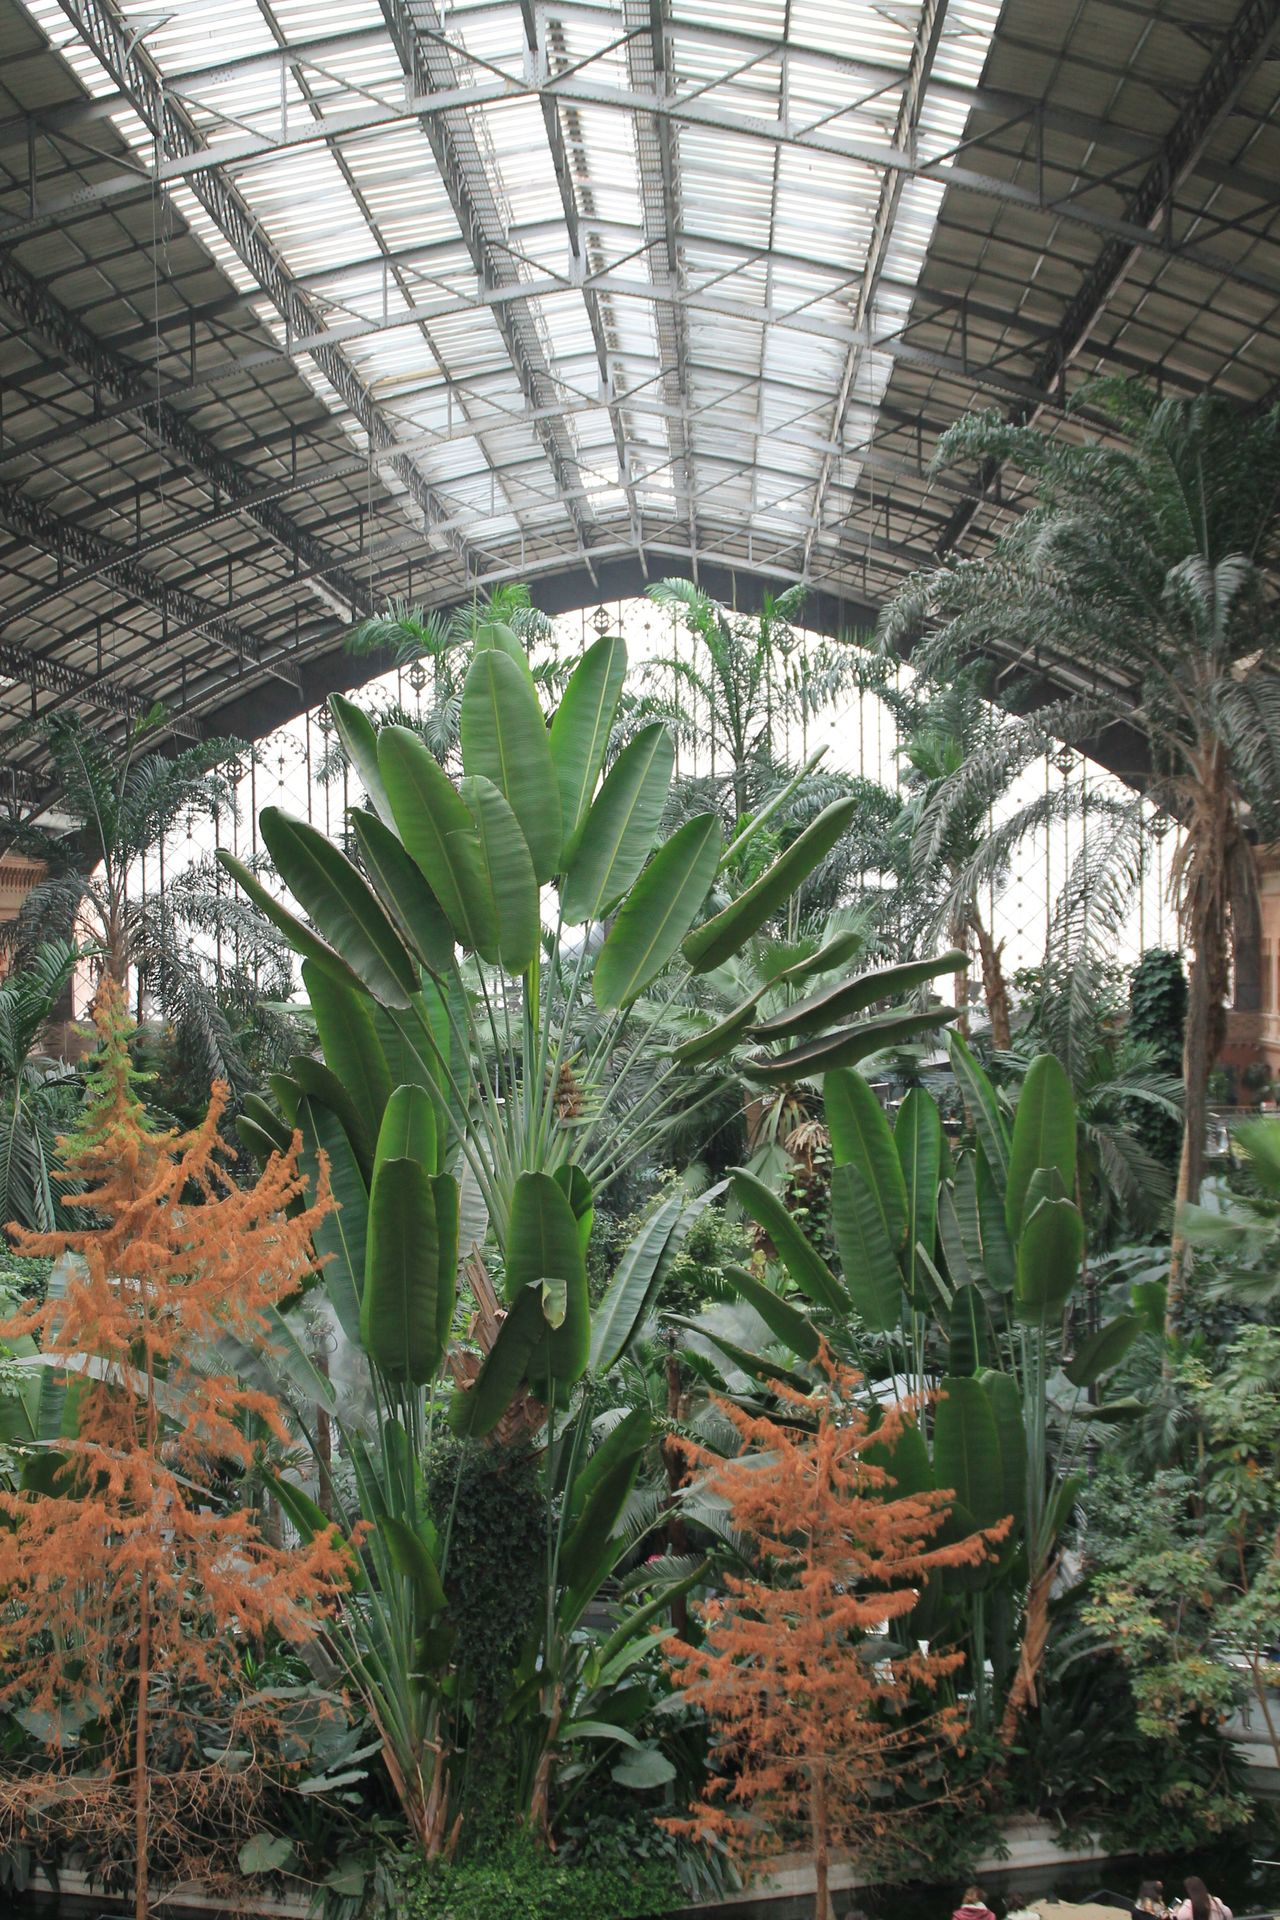 Growth Greenhouse Plant Leaf Agriculture Built Structure Indoors  Plant Nursery Green Color No People Nature Day Architecture Freshness Enjoying Life Hanging Out EyeEm Best Shots Taking Photos Check This Out Tropical Invernadero Train Station Atocha Palm Tree Architecture